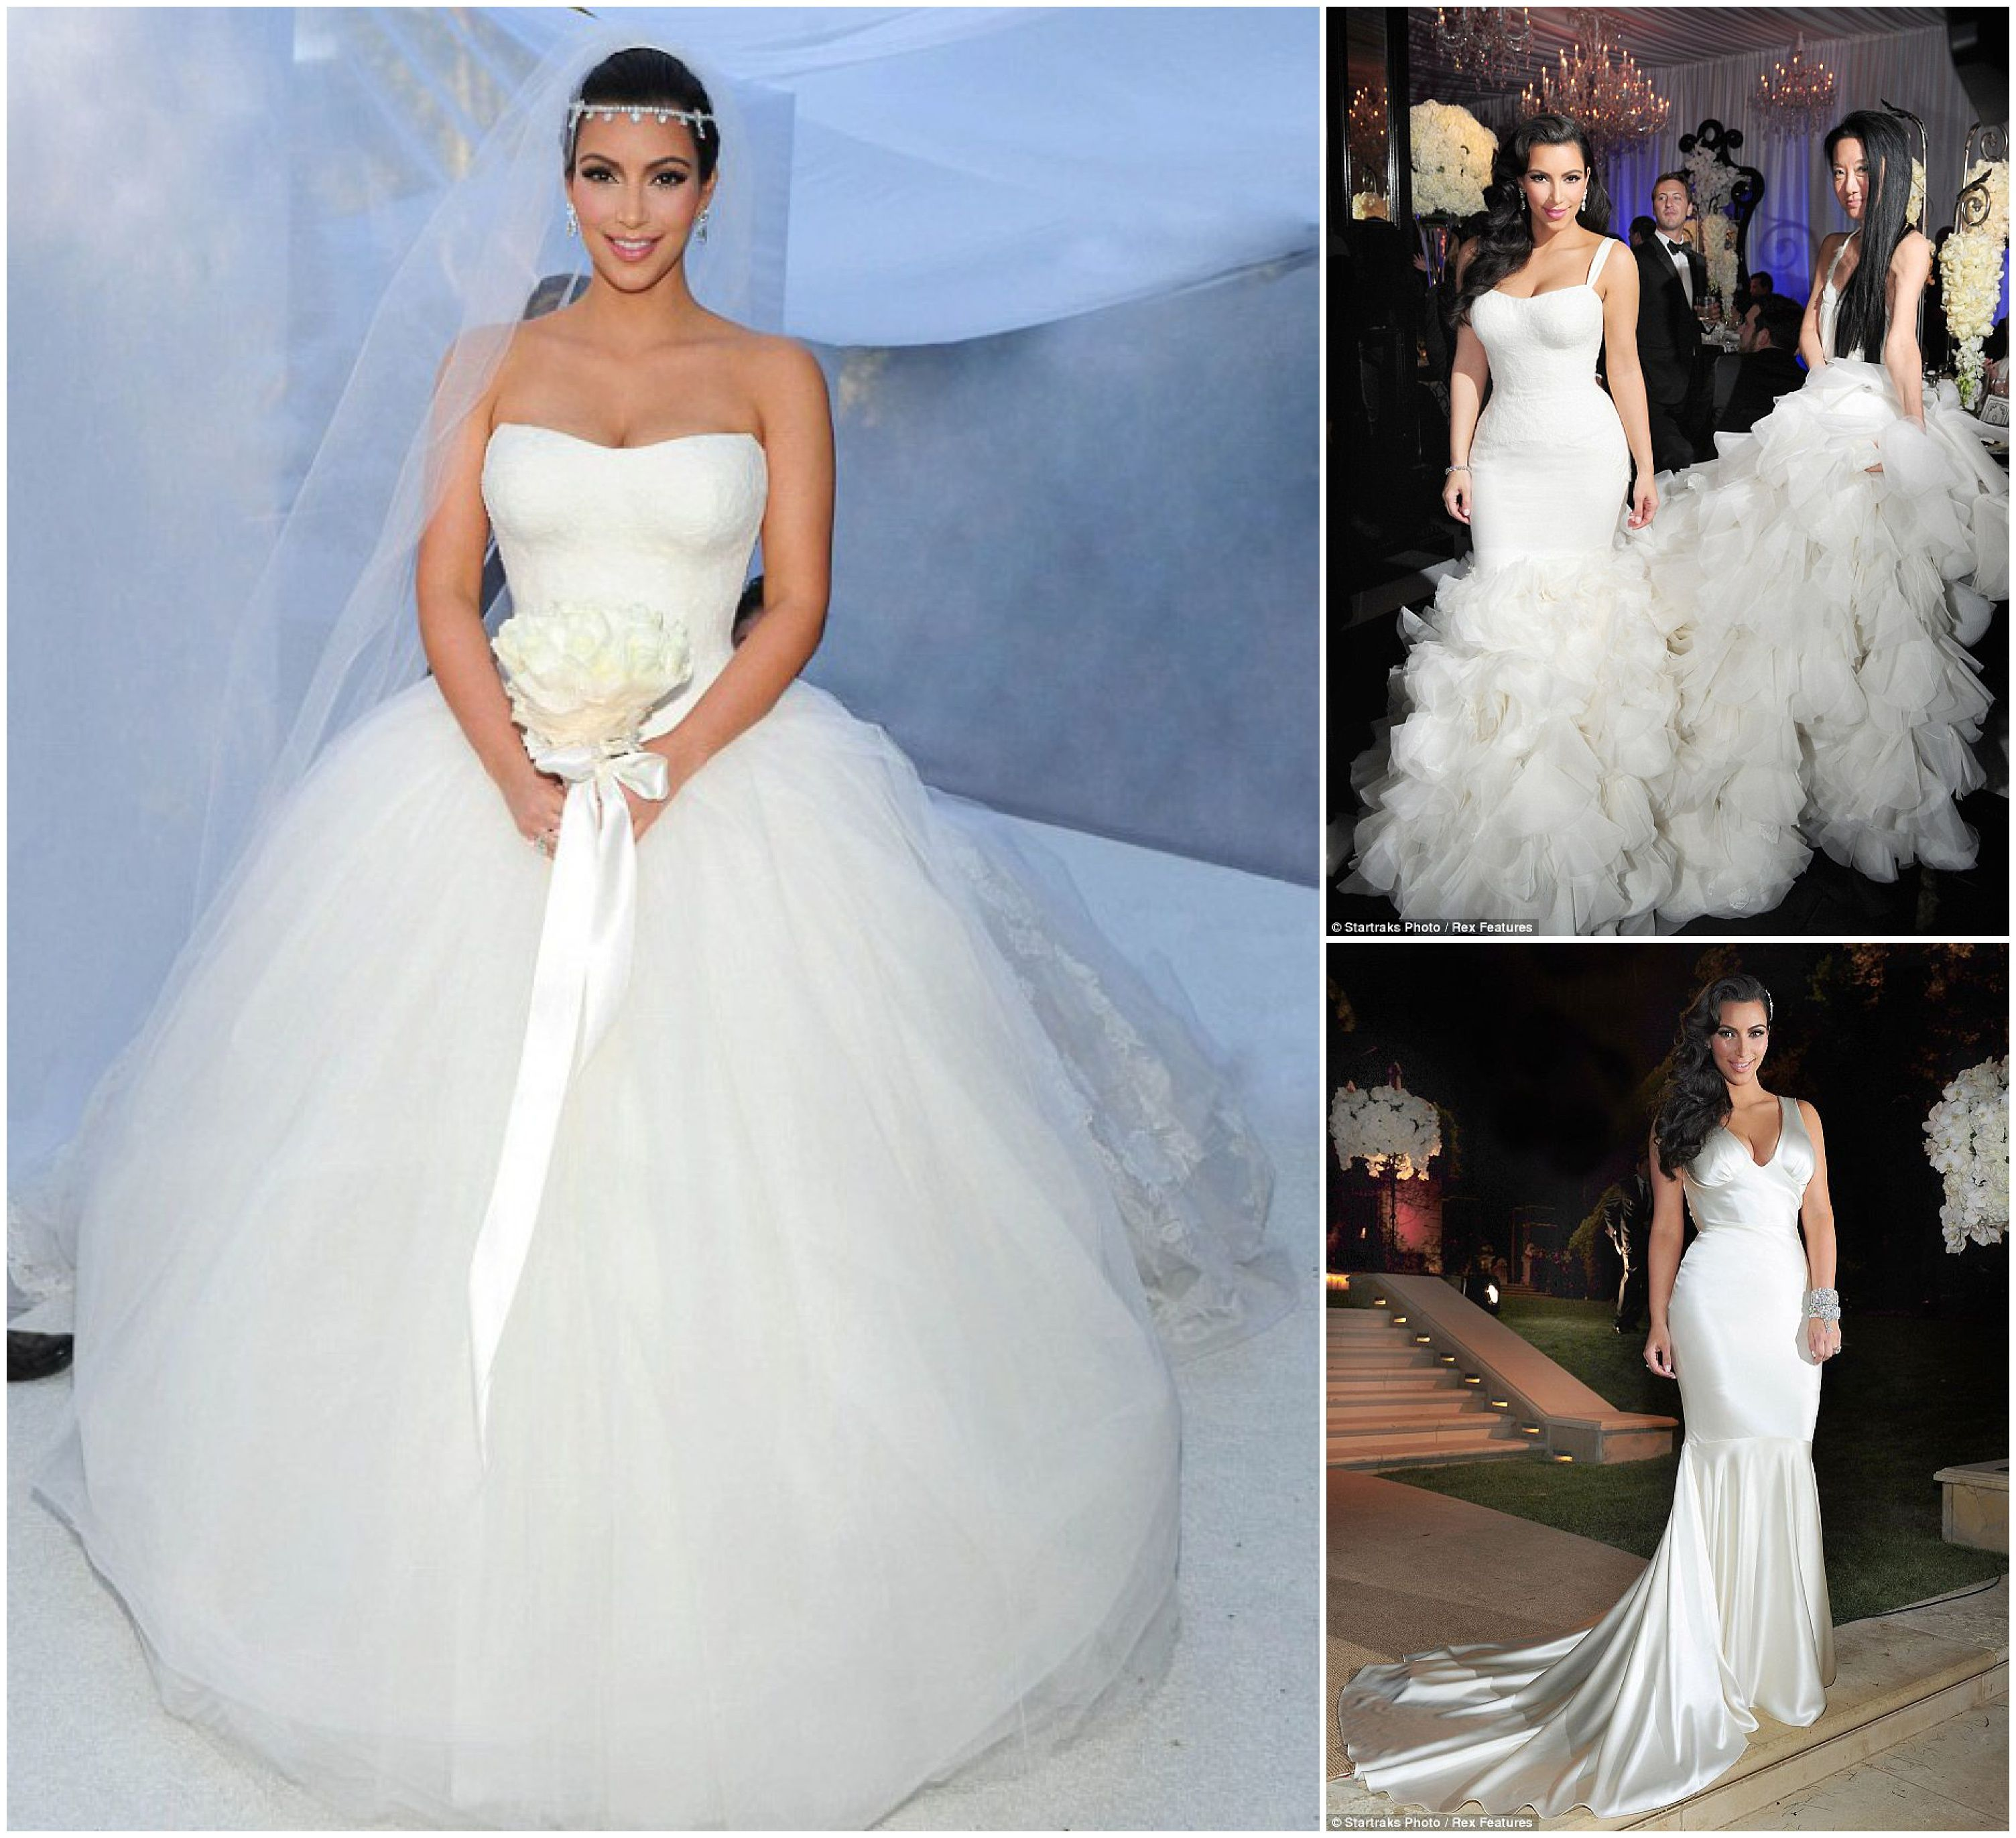 Wedding news kim kardashian39s wedding dresses kim for Kim kardashian s wedding dress